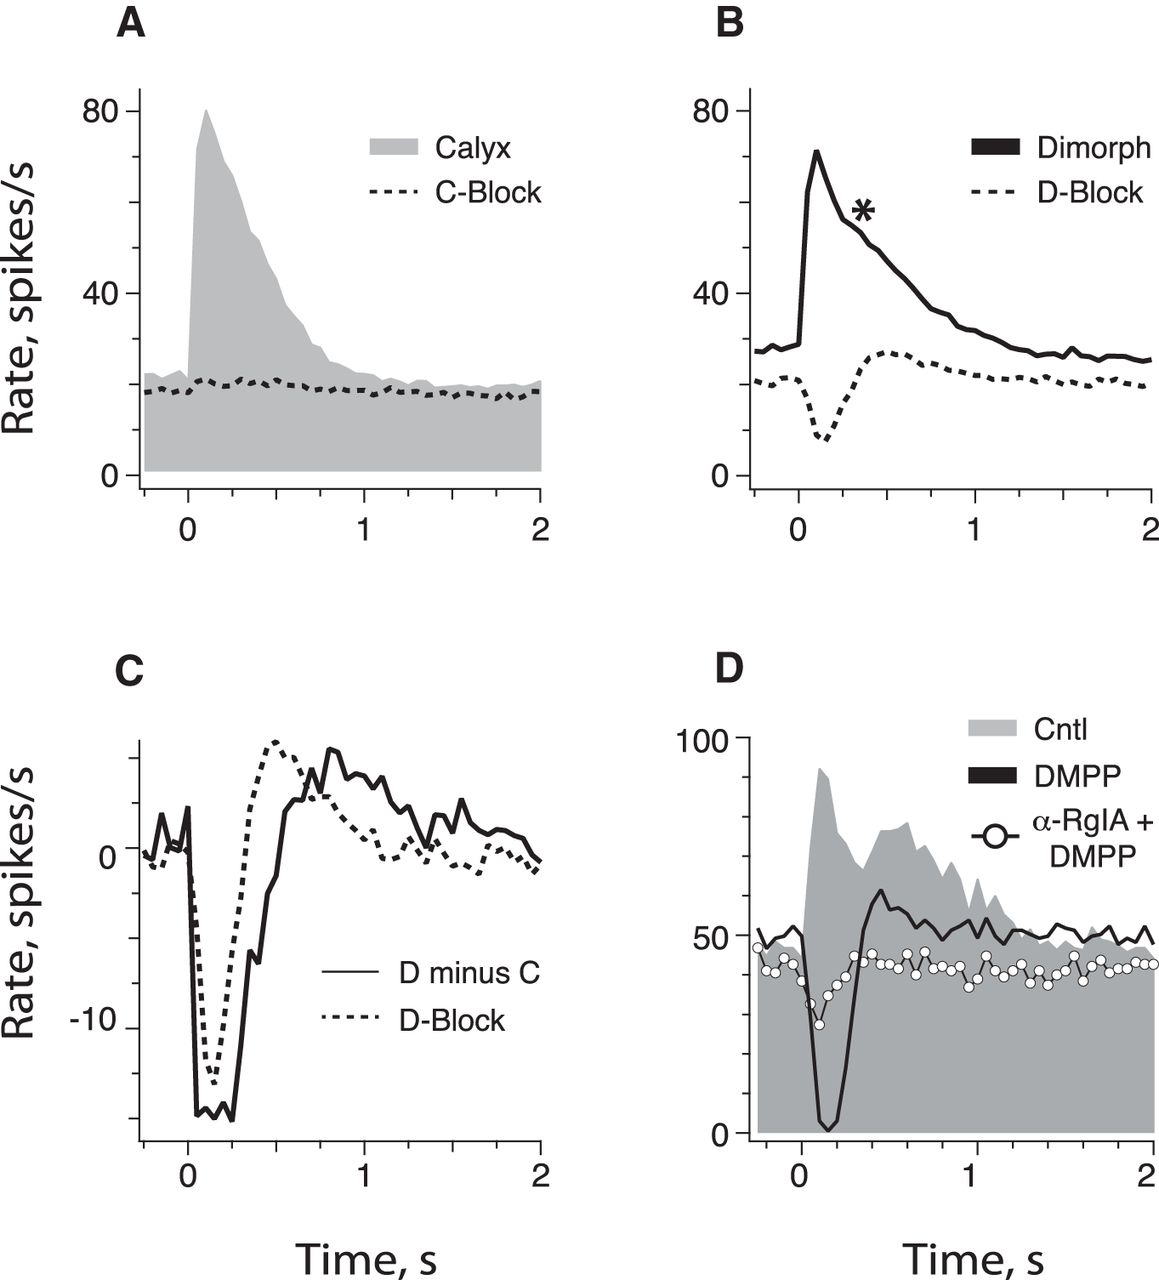 Pharmacologically Distinct Nicotinic Acetylcholine Receptors Drive